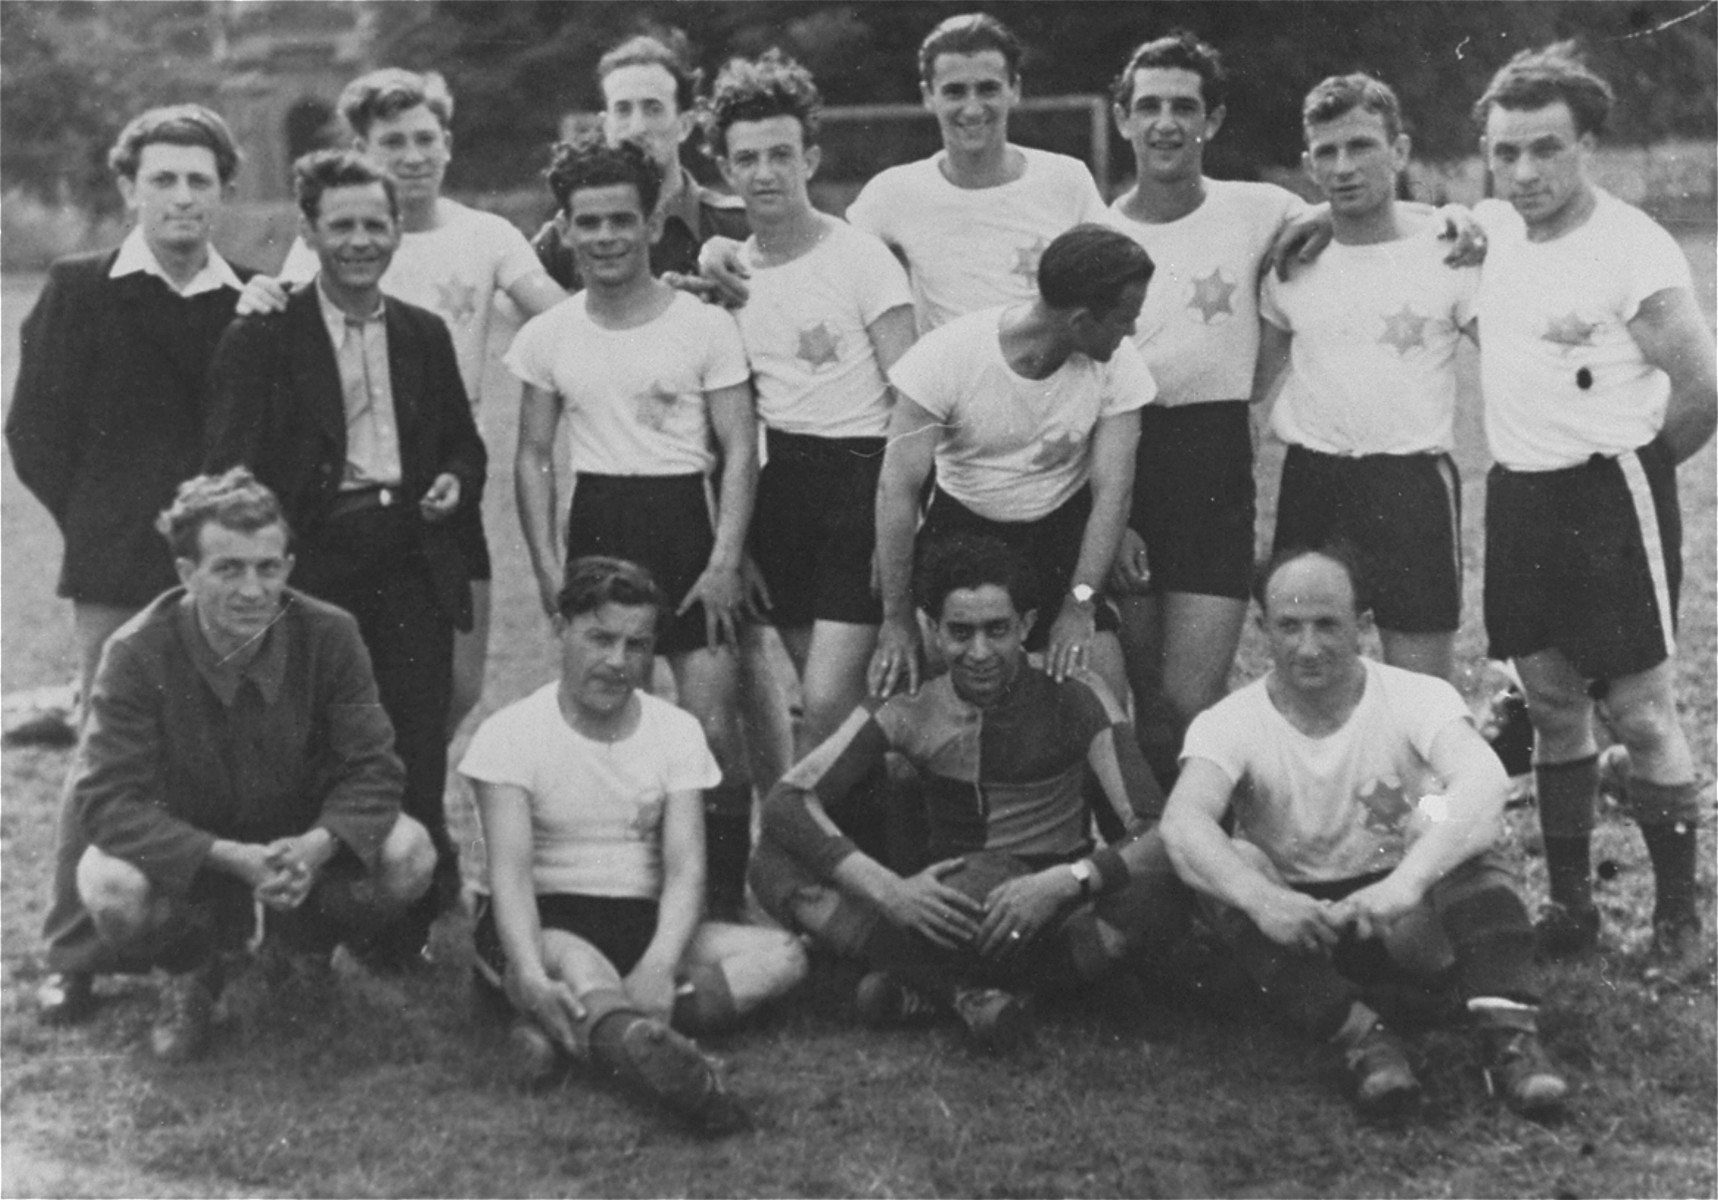 Group portrait of the Jewish soccer team in the Hanover displaced persons' camp.  Among those pictured are Ignaz (Yidel) Rotmench (first row, second from the left), Daniel (Szwajcer) Schweitzer  (standing third from the right), and his brother, Leo Schweitzer (standing fifth from the right).